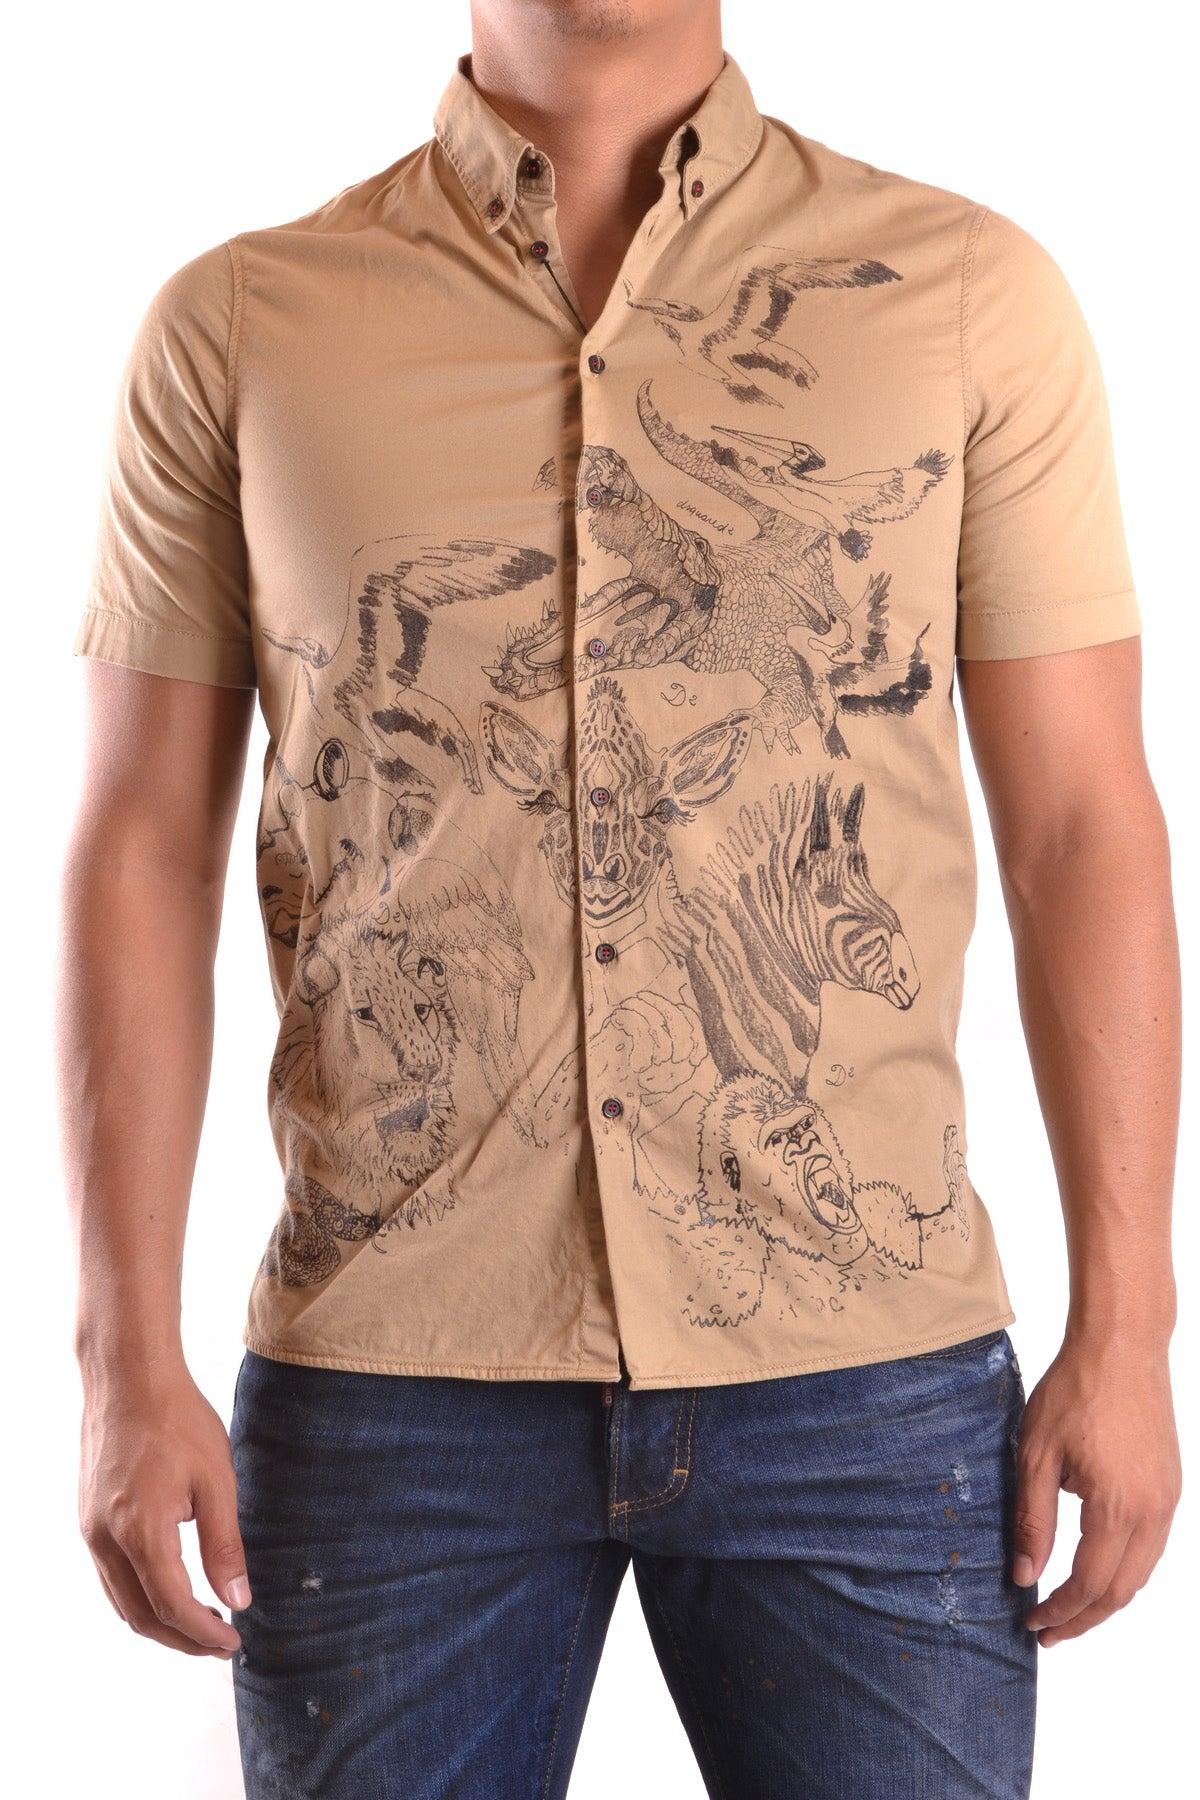 Shirt Dsquared-Shirts - MAN-44-Product Details Terms: New With LabelYear: 2017Main Color: BeigeGender: ManMade In: ItalySize: ItSeason: Spring / SummerClothing Type: CamiciaComposition: Cotton 97%, Elastane 3%-Keyomi-Sook